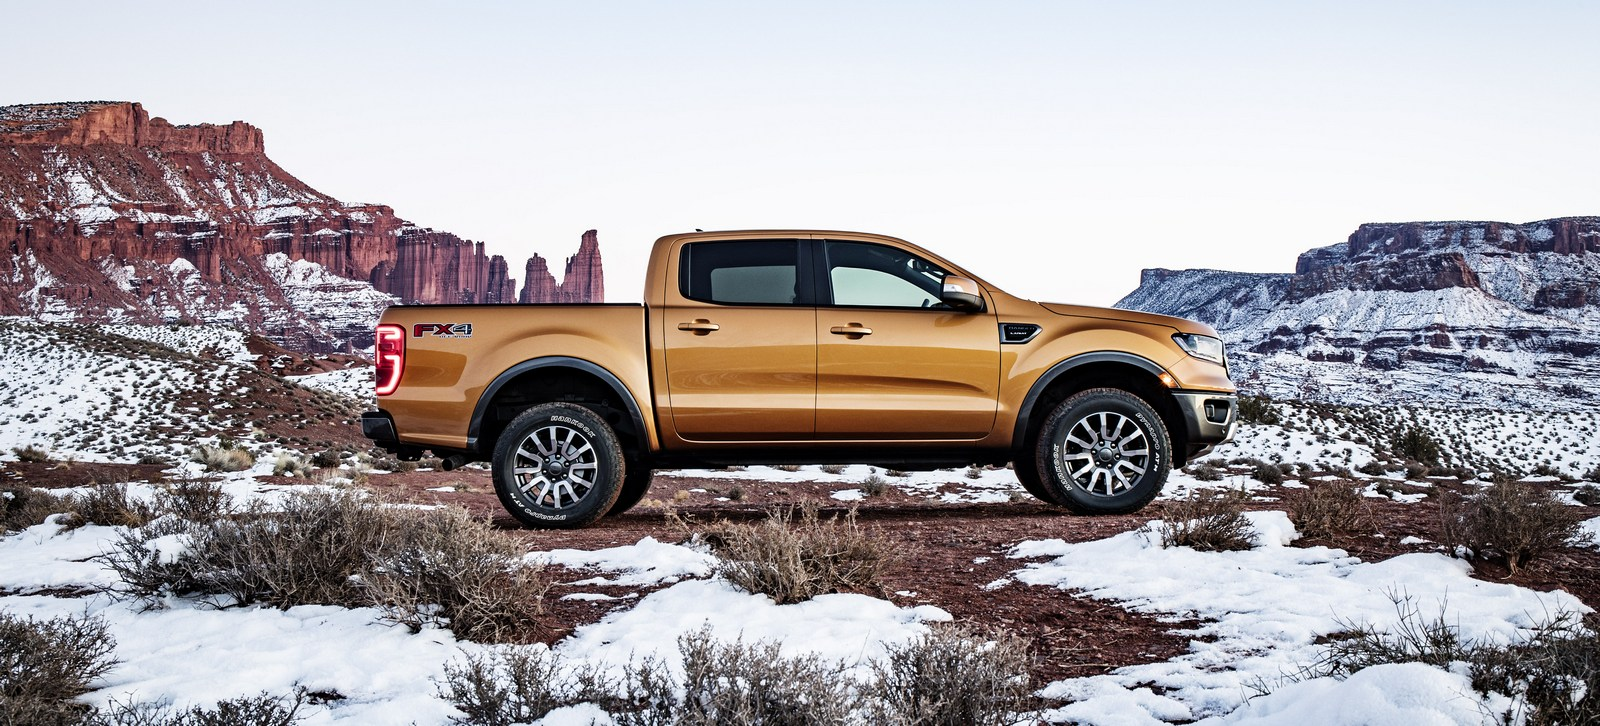 2019 Ford Ranger Has Two Fuel Filters - autoevolution Off Road Fuel Filters on jeep liberty off-road, nissan titan off-road, 16x14 rims off-road, 15 inch mud tires off-road, pirelli tires off-road, black rhino wheels on silverado off-road, chrome rockstar rims off-road, 18 inch rims off-road, chevy silverado off-road, 16 inch rims off-road, ford raptor off-road, cars off-road,